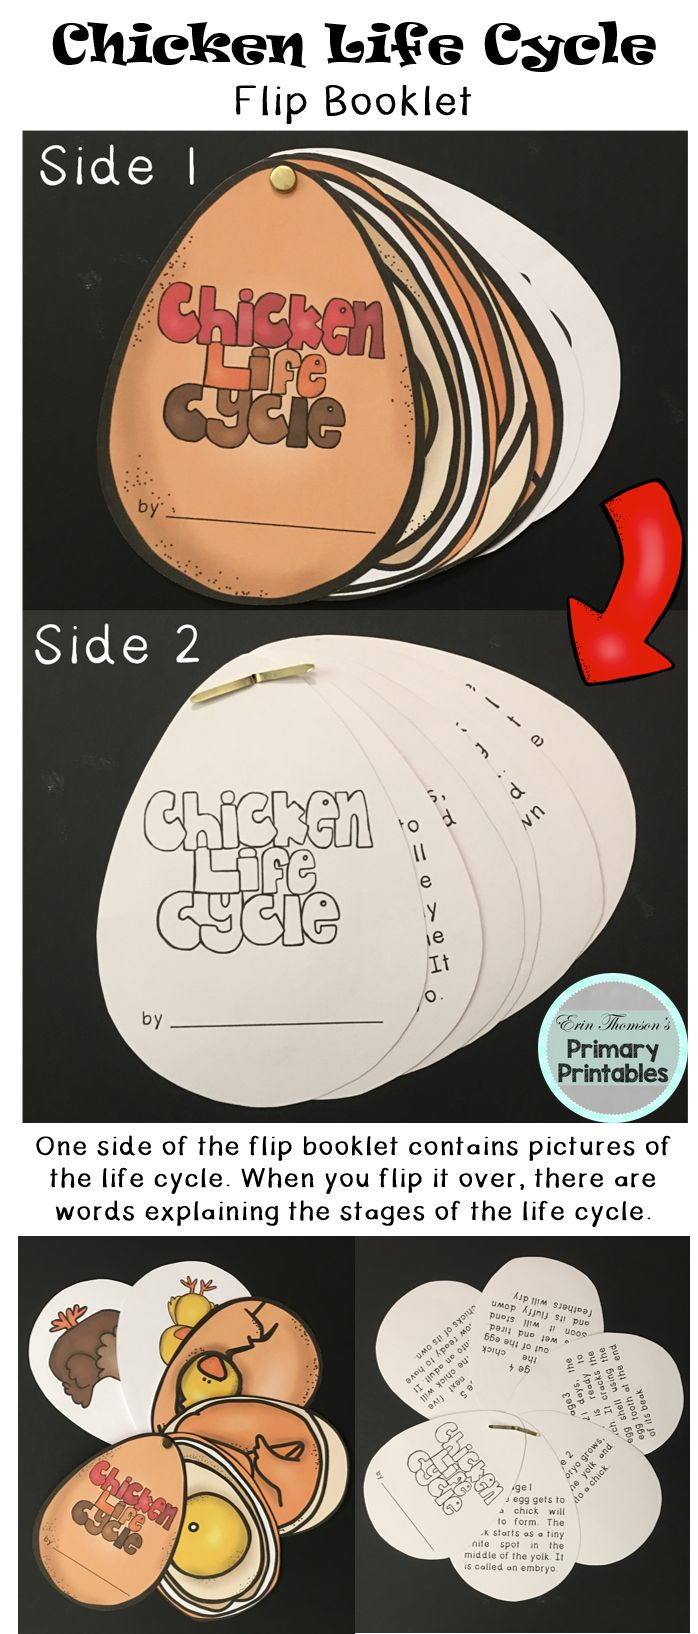 Chicken Life Cycle Flip Booklet ~ egg, growing, hatching, chick, chicken. Includes pictures and stages.